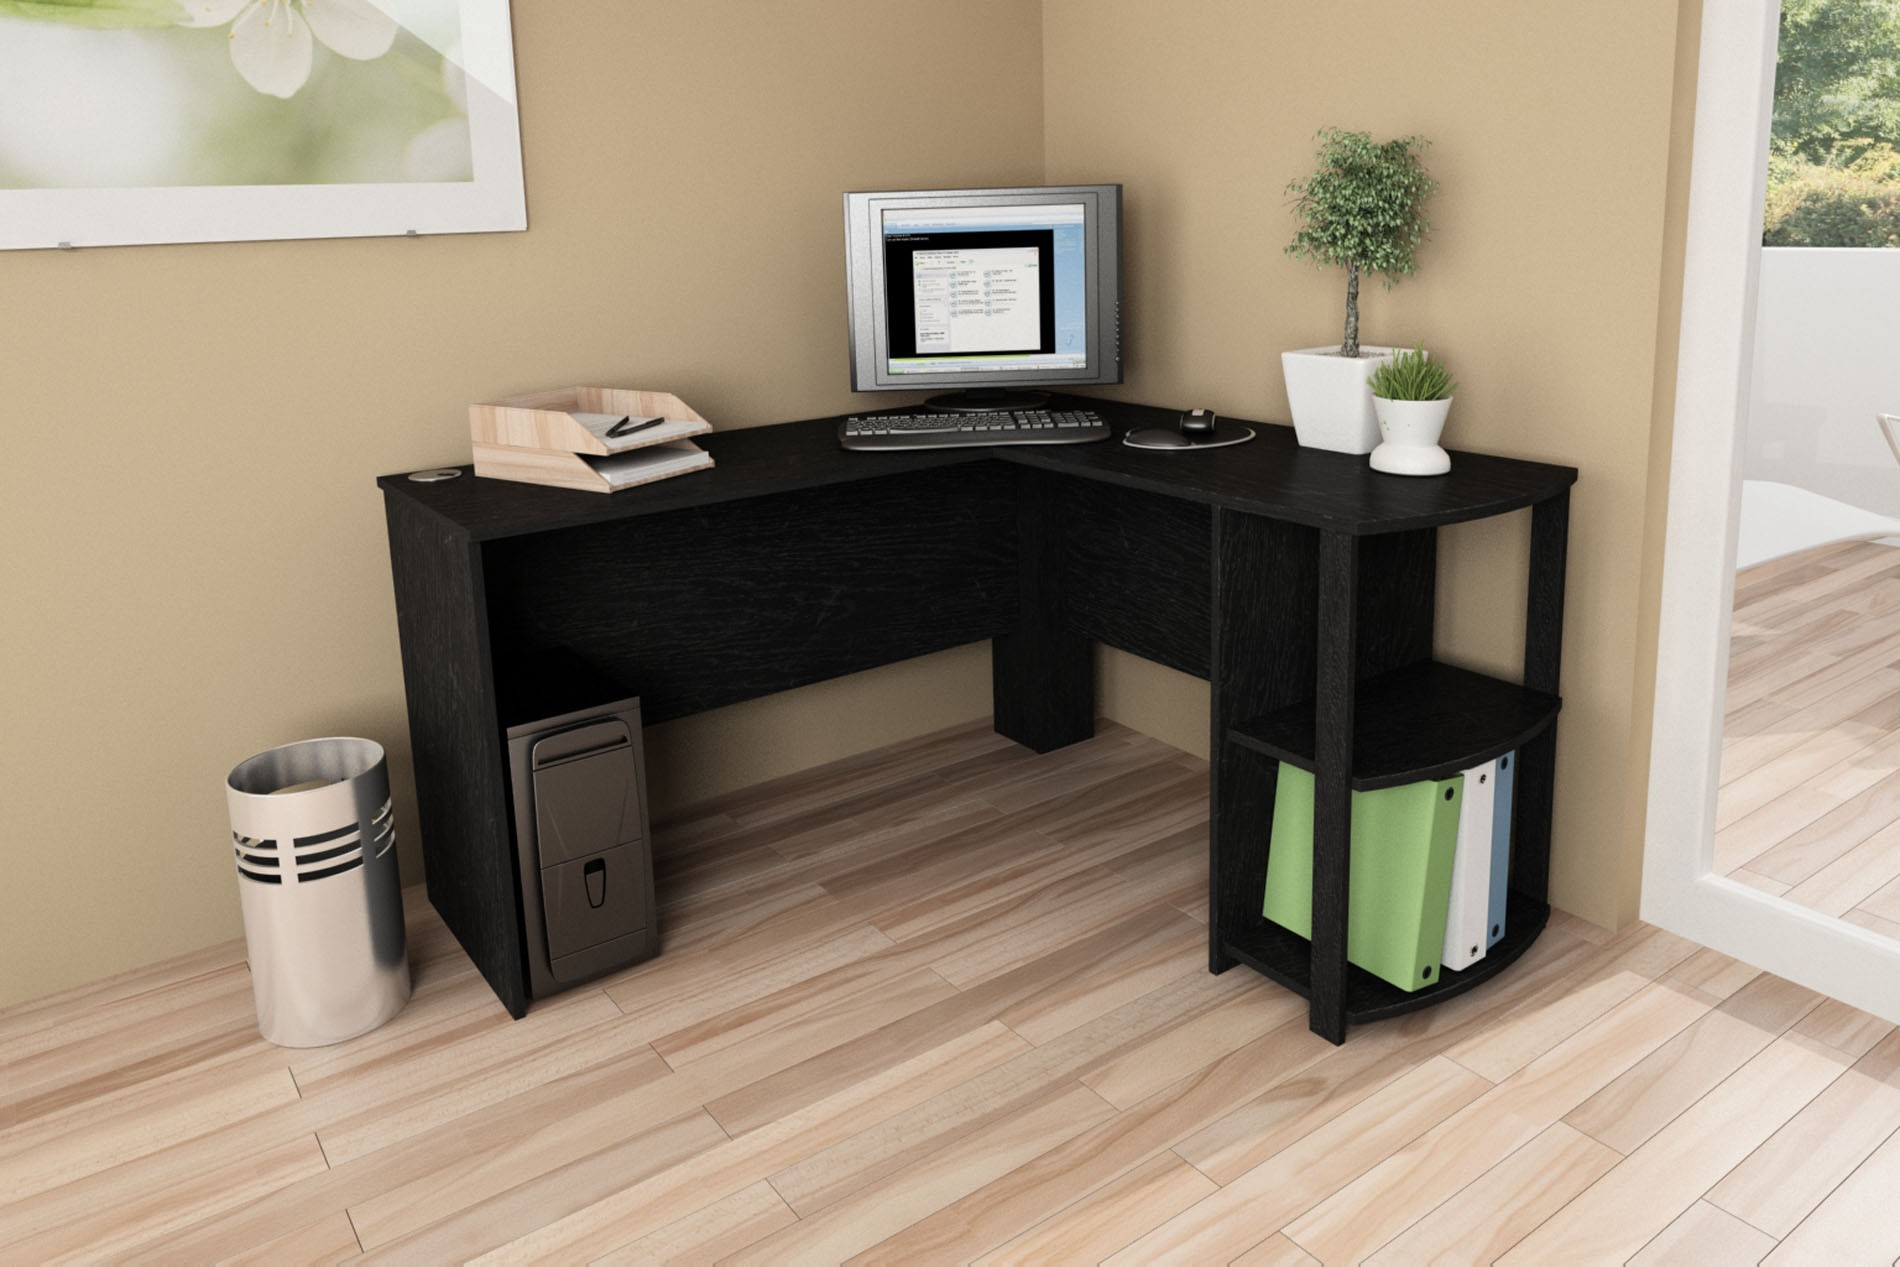 Dorel Home Furnishings L-Shaped Desk with 2 Shelves Multiple Colors